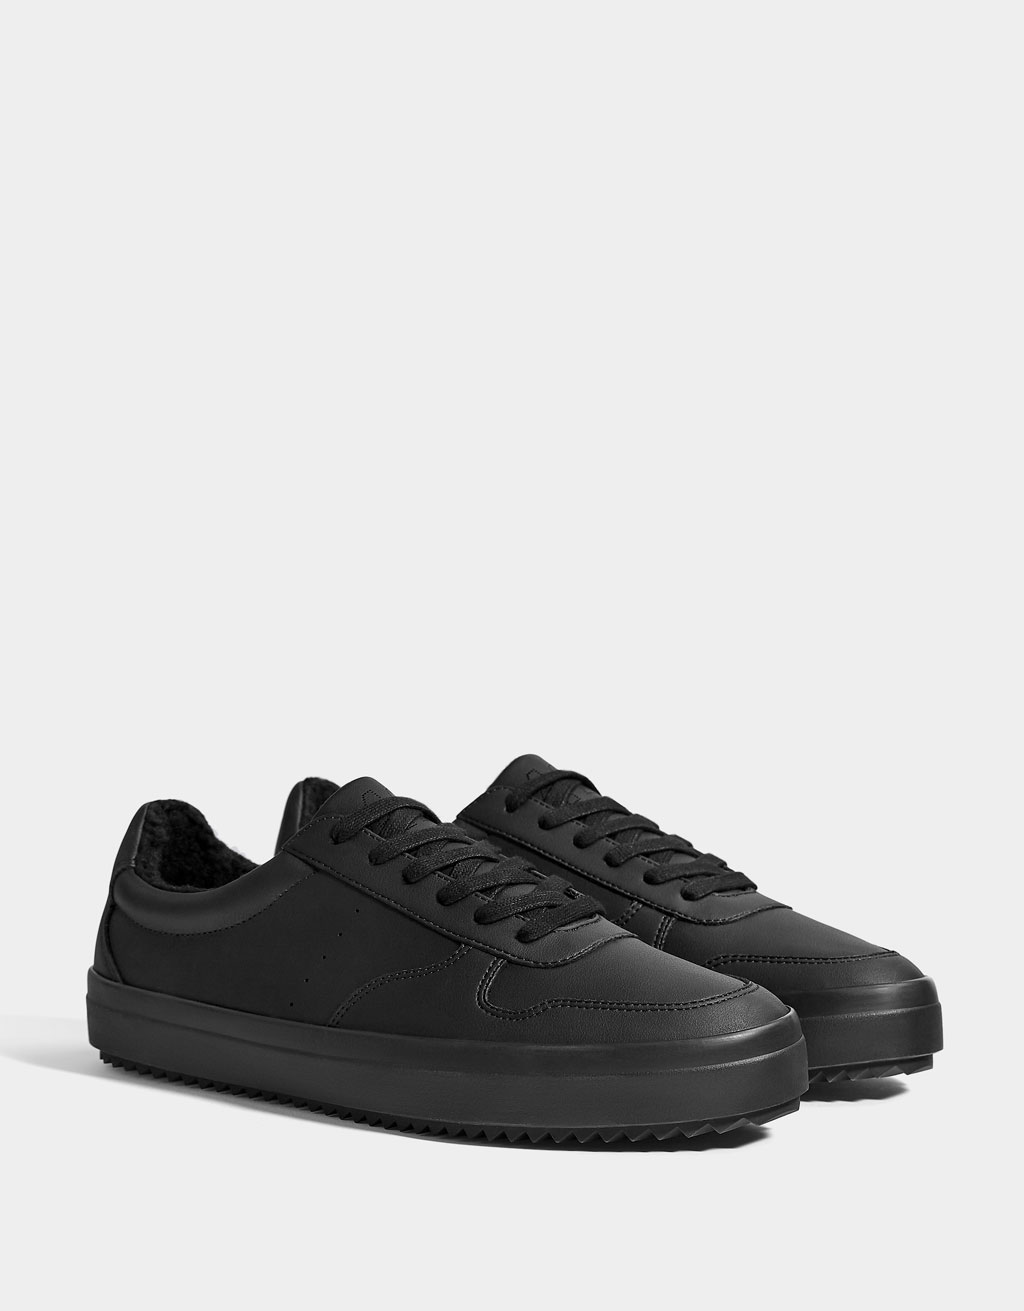 Men's lined sneakers